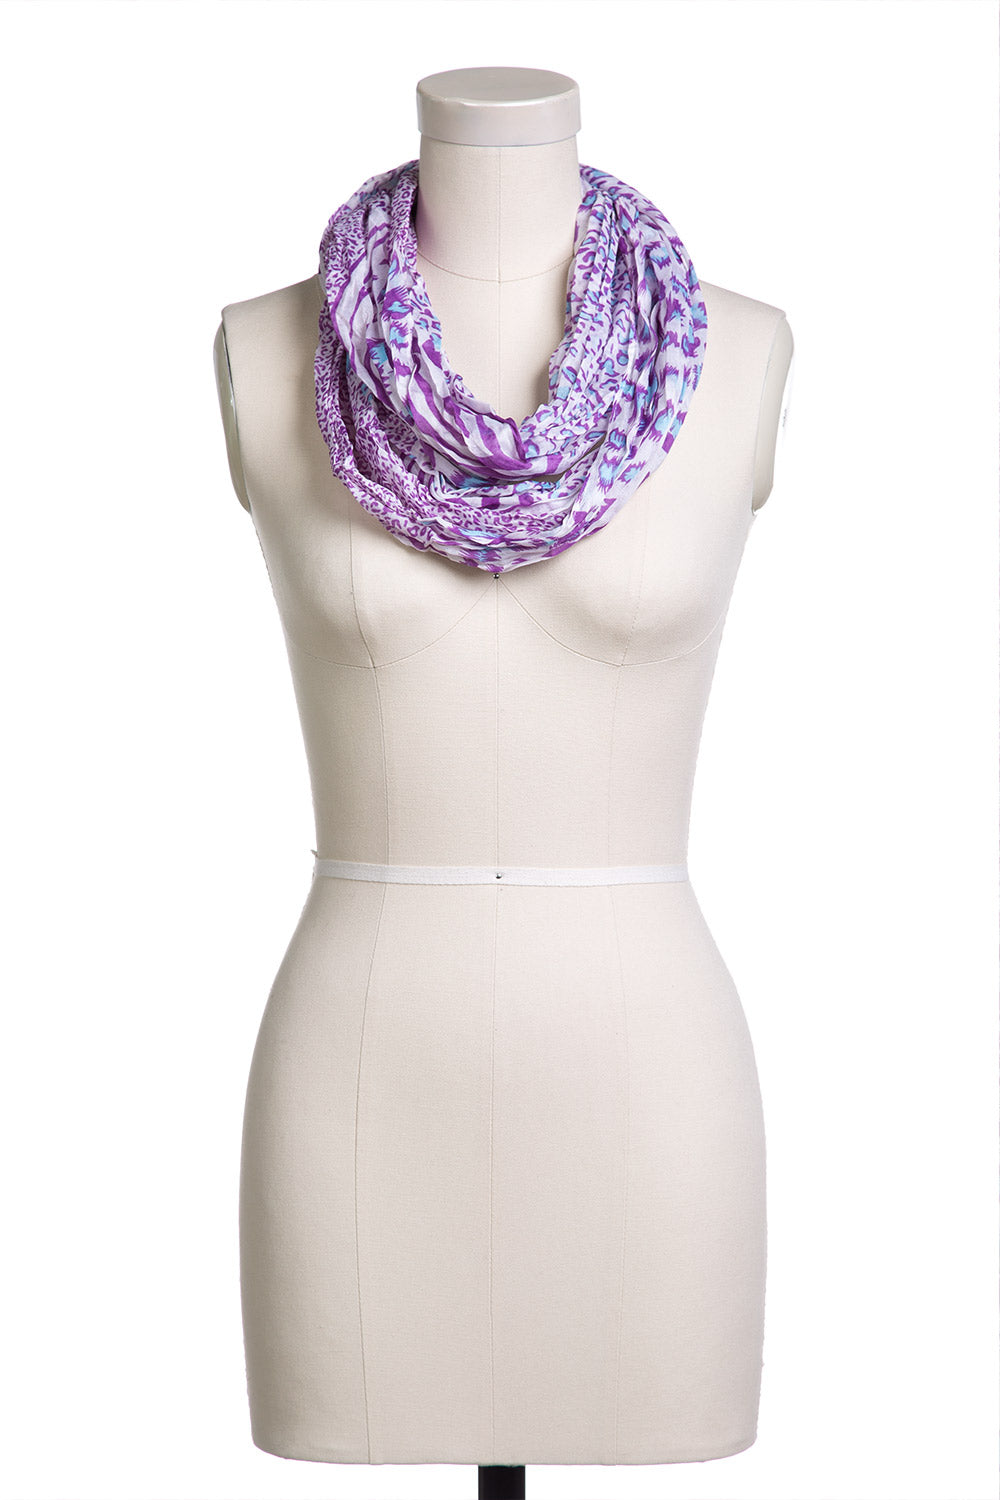 Type 1 Scrunched Nose Scarf